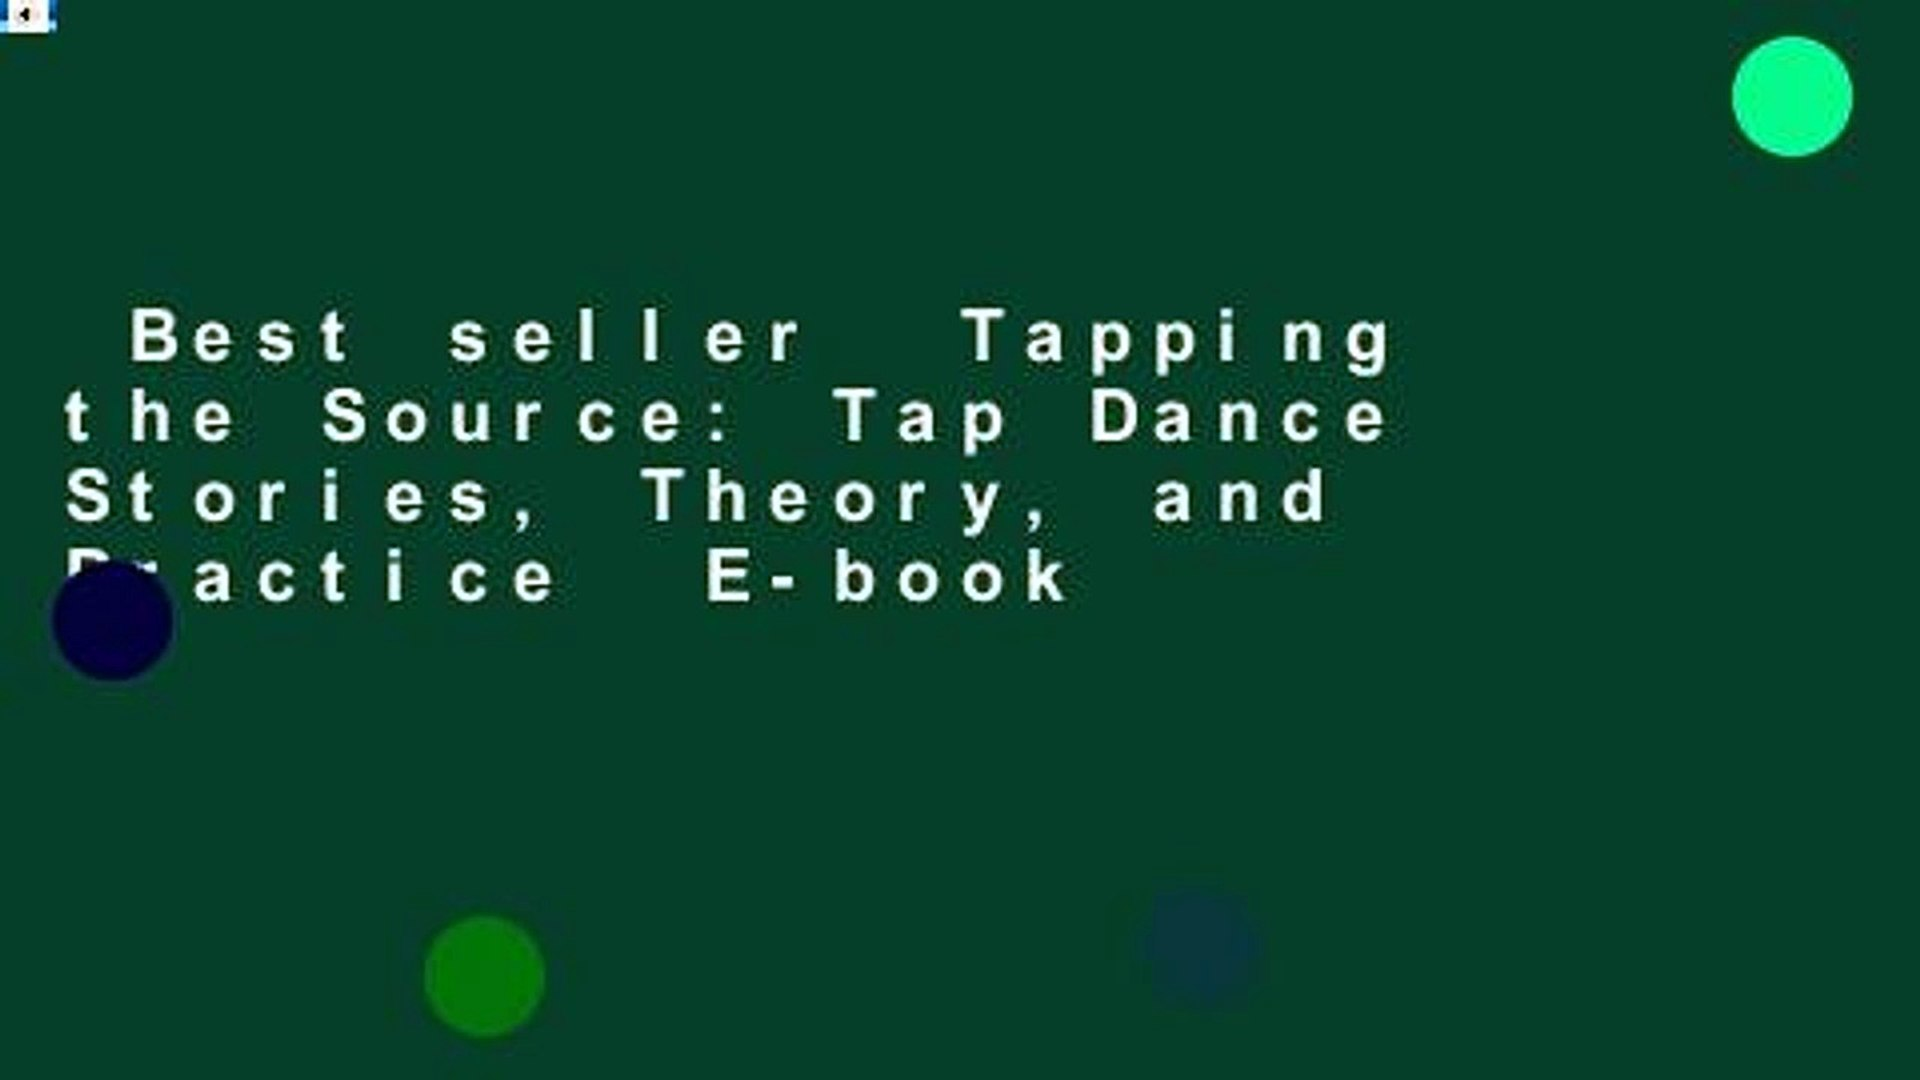 Best seller  Tapping the Source: Tap Dance Stories, Theory, and Practice  E-book